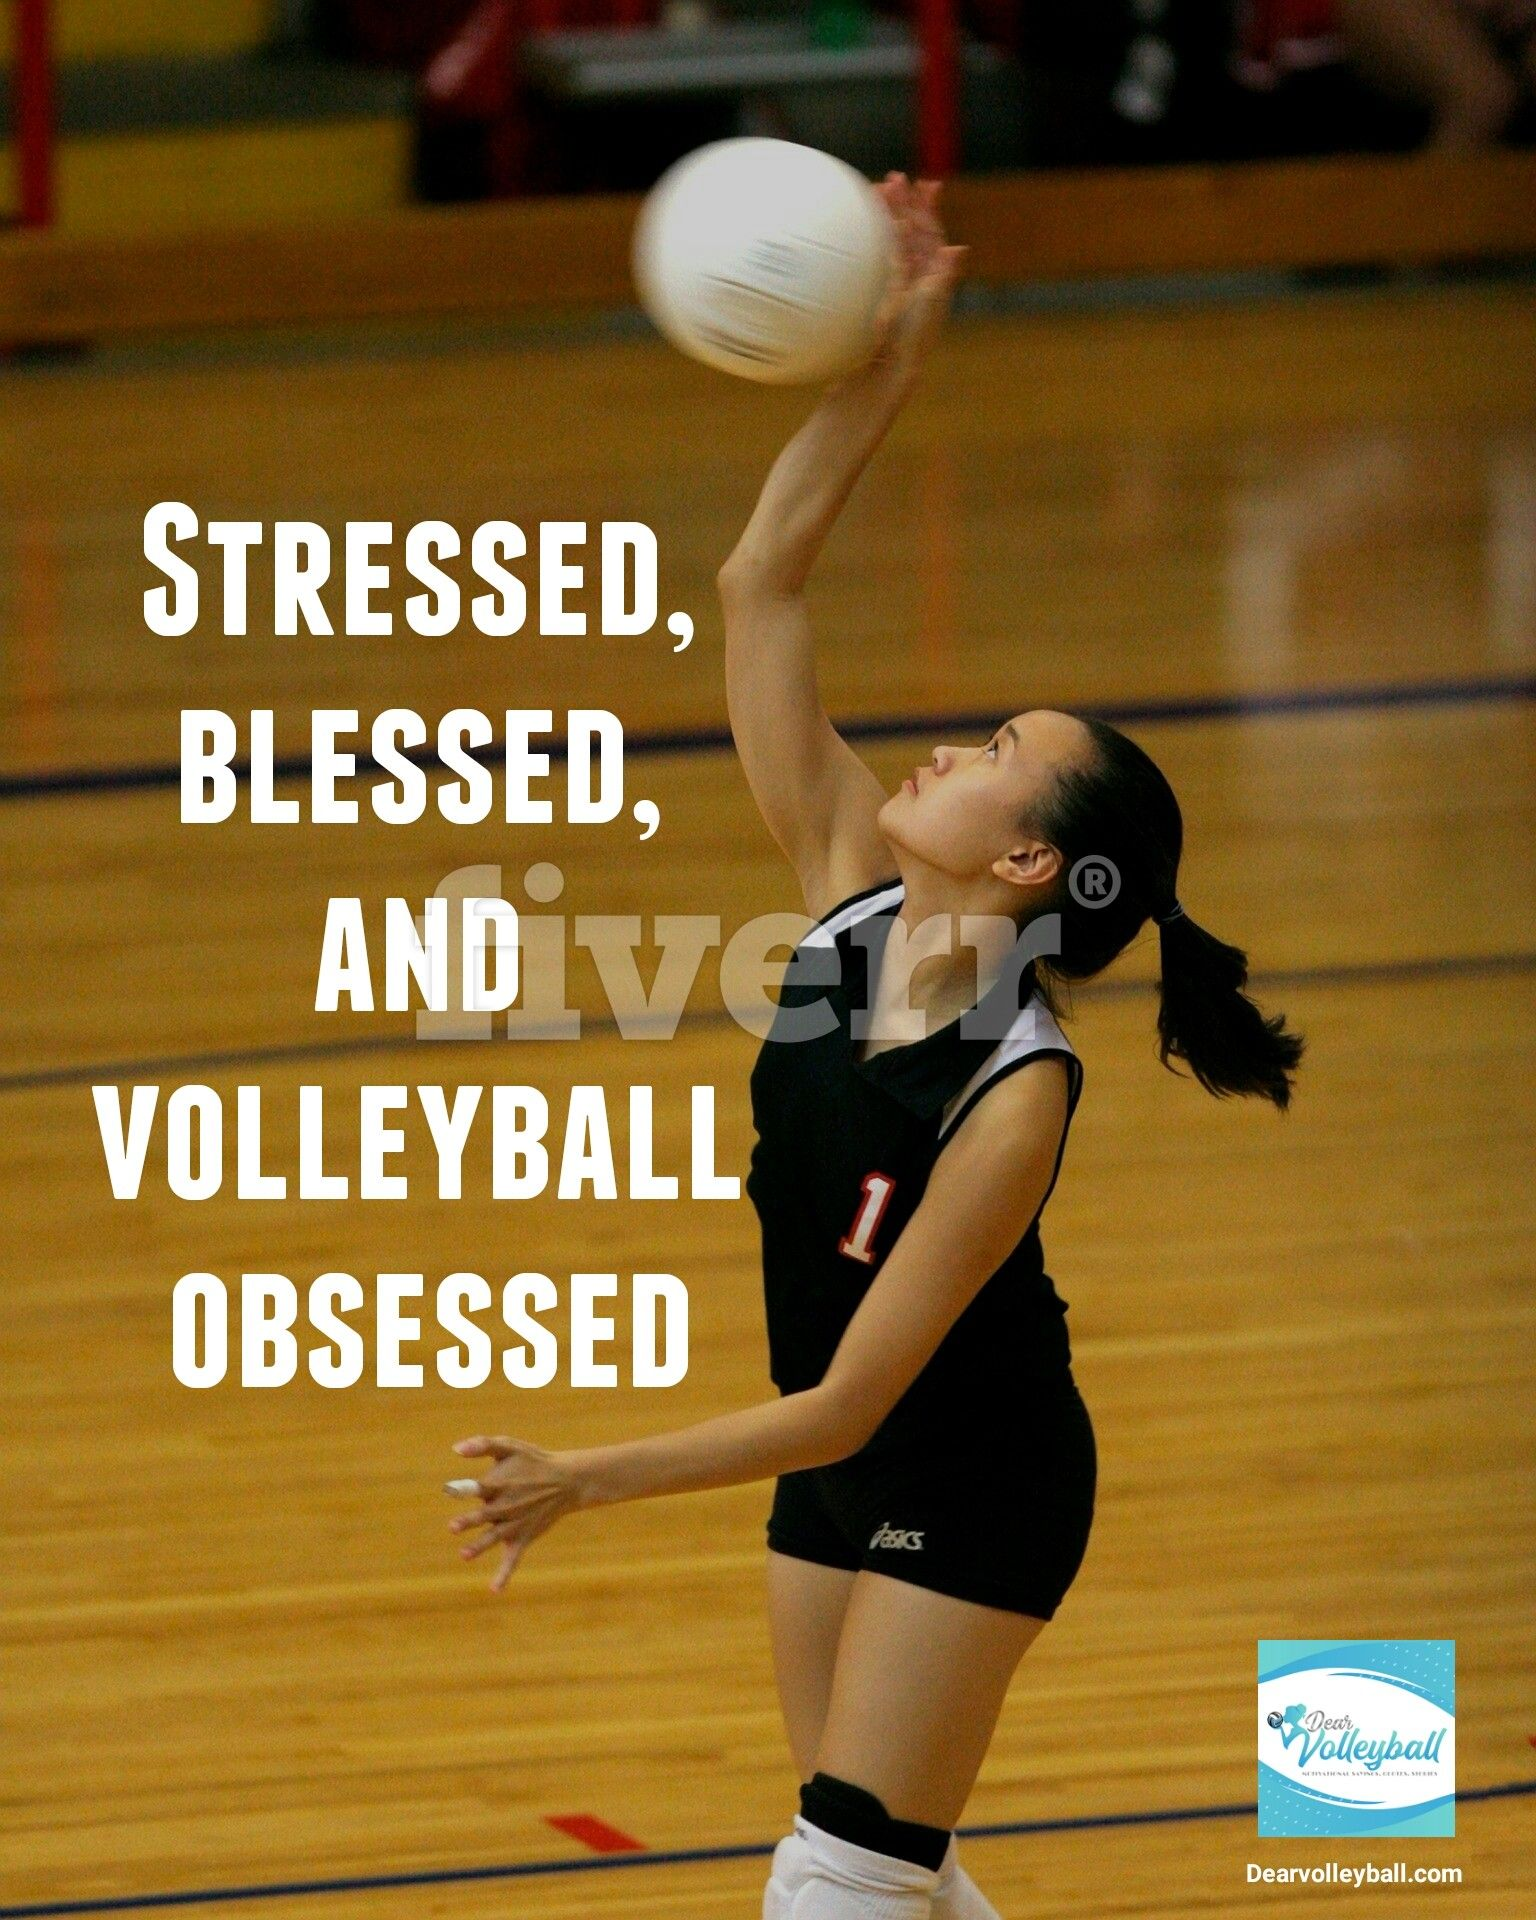 75 Volleyball Motivational Quotes And Images That Inspire Success Volleyball Motivation Inspirational Volleyball Quotes Volleyball Humor